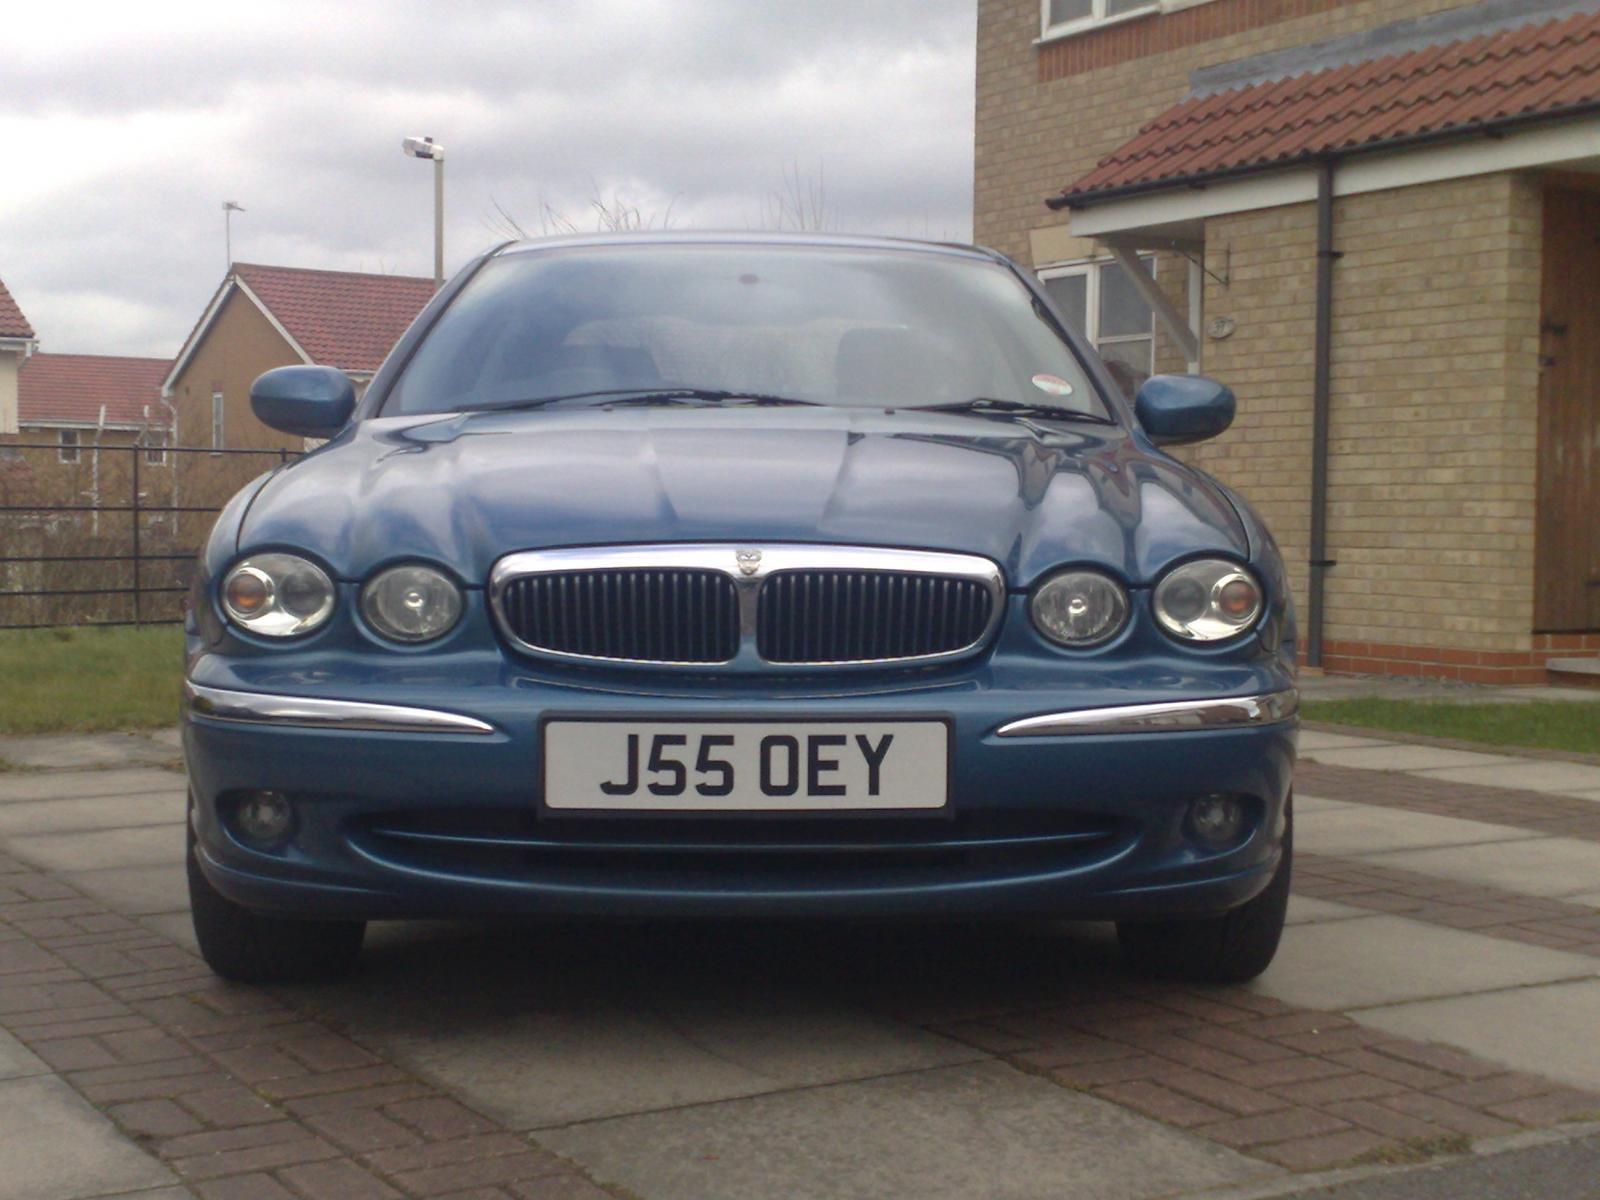 My first Jag